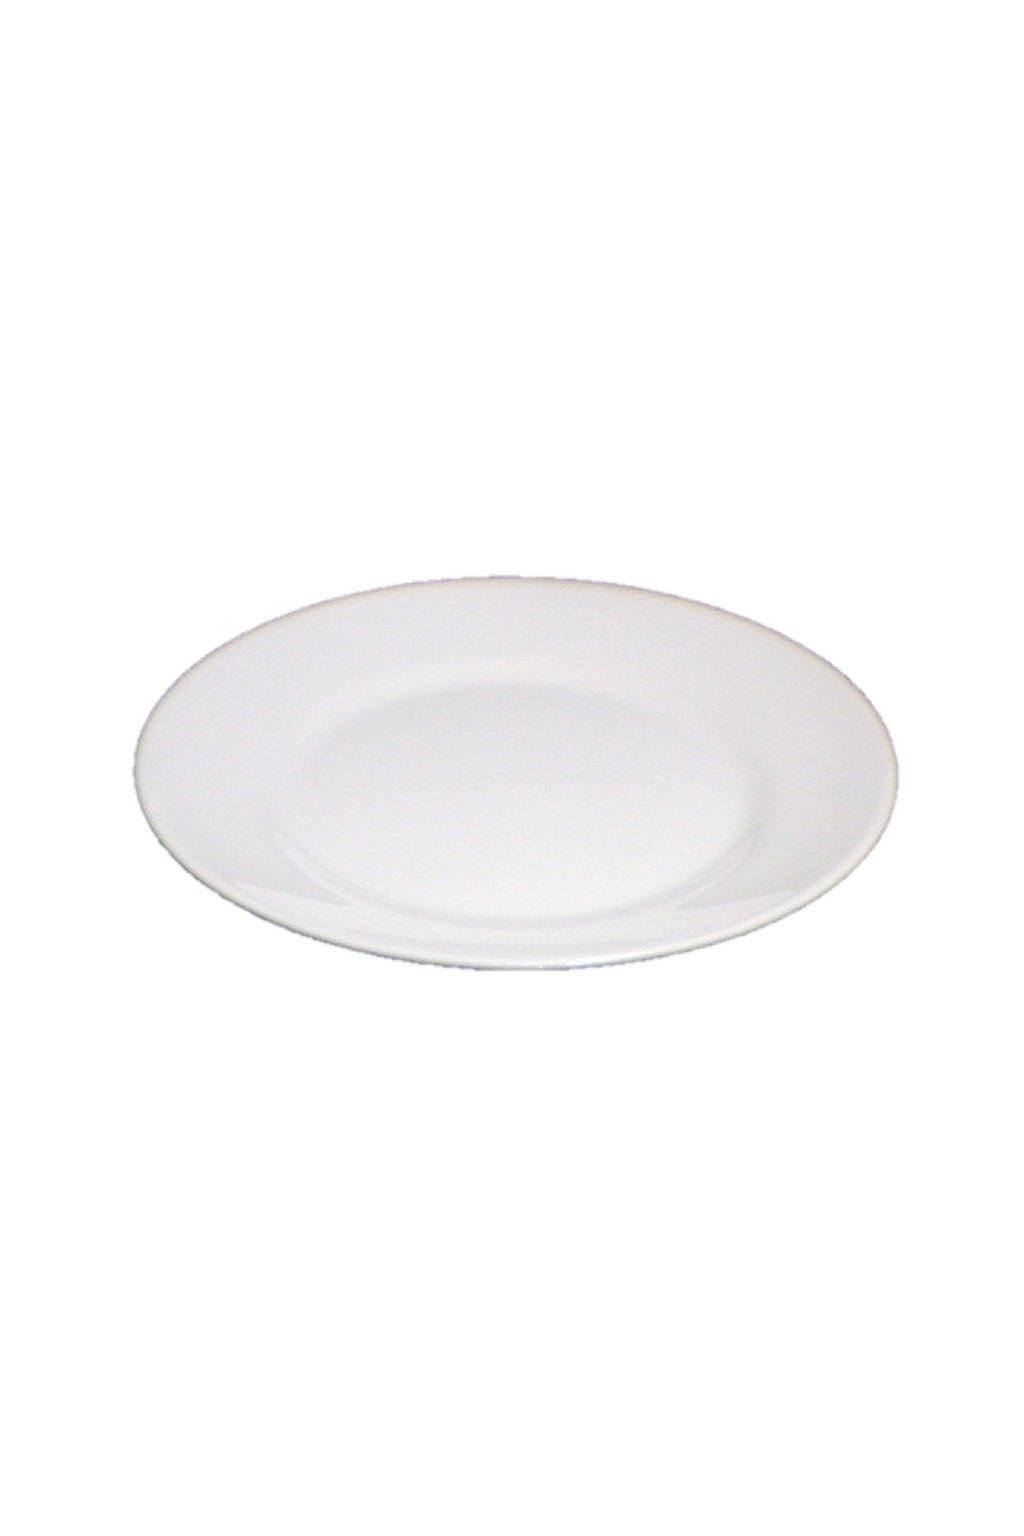 "Thick 10"" Dinner Plate"